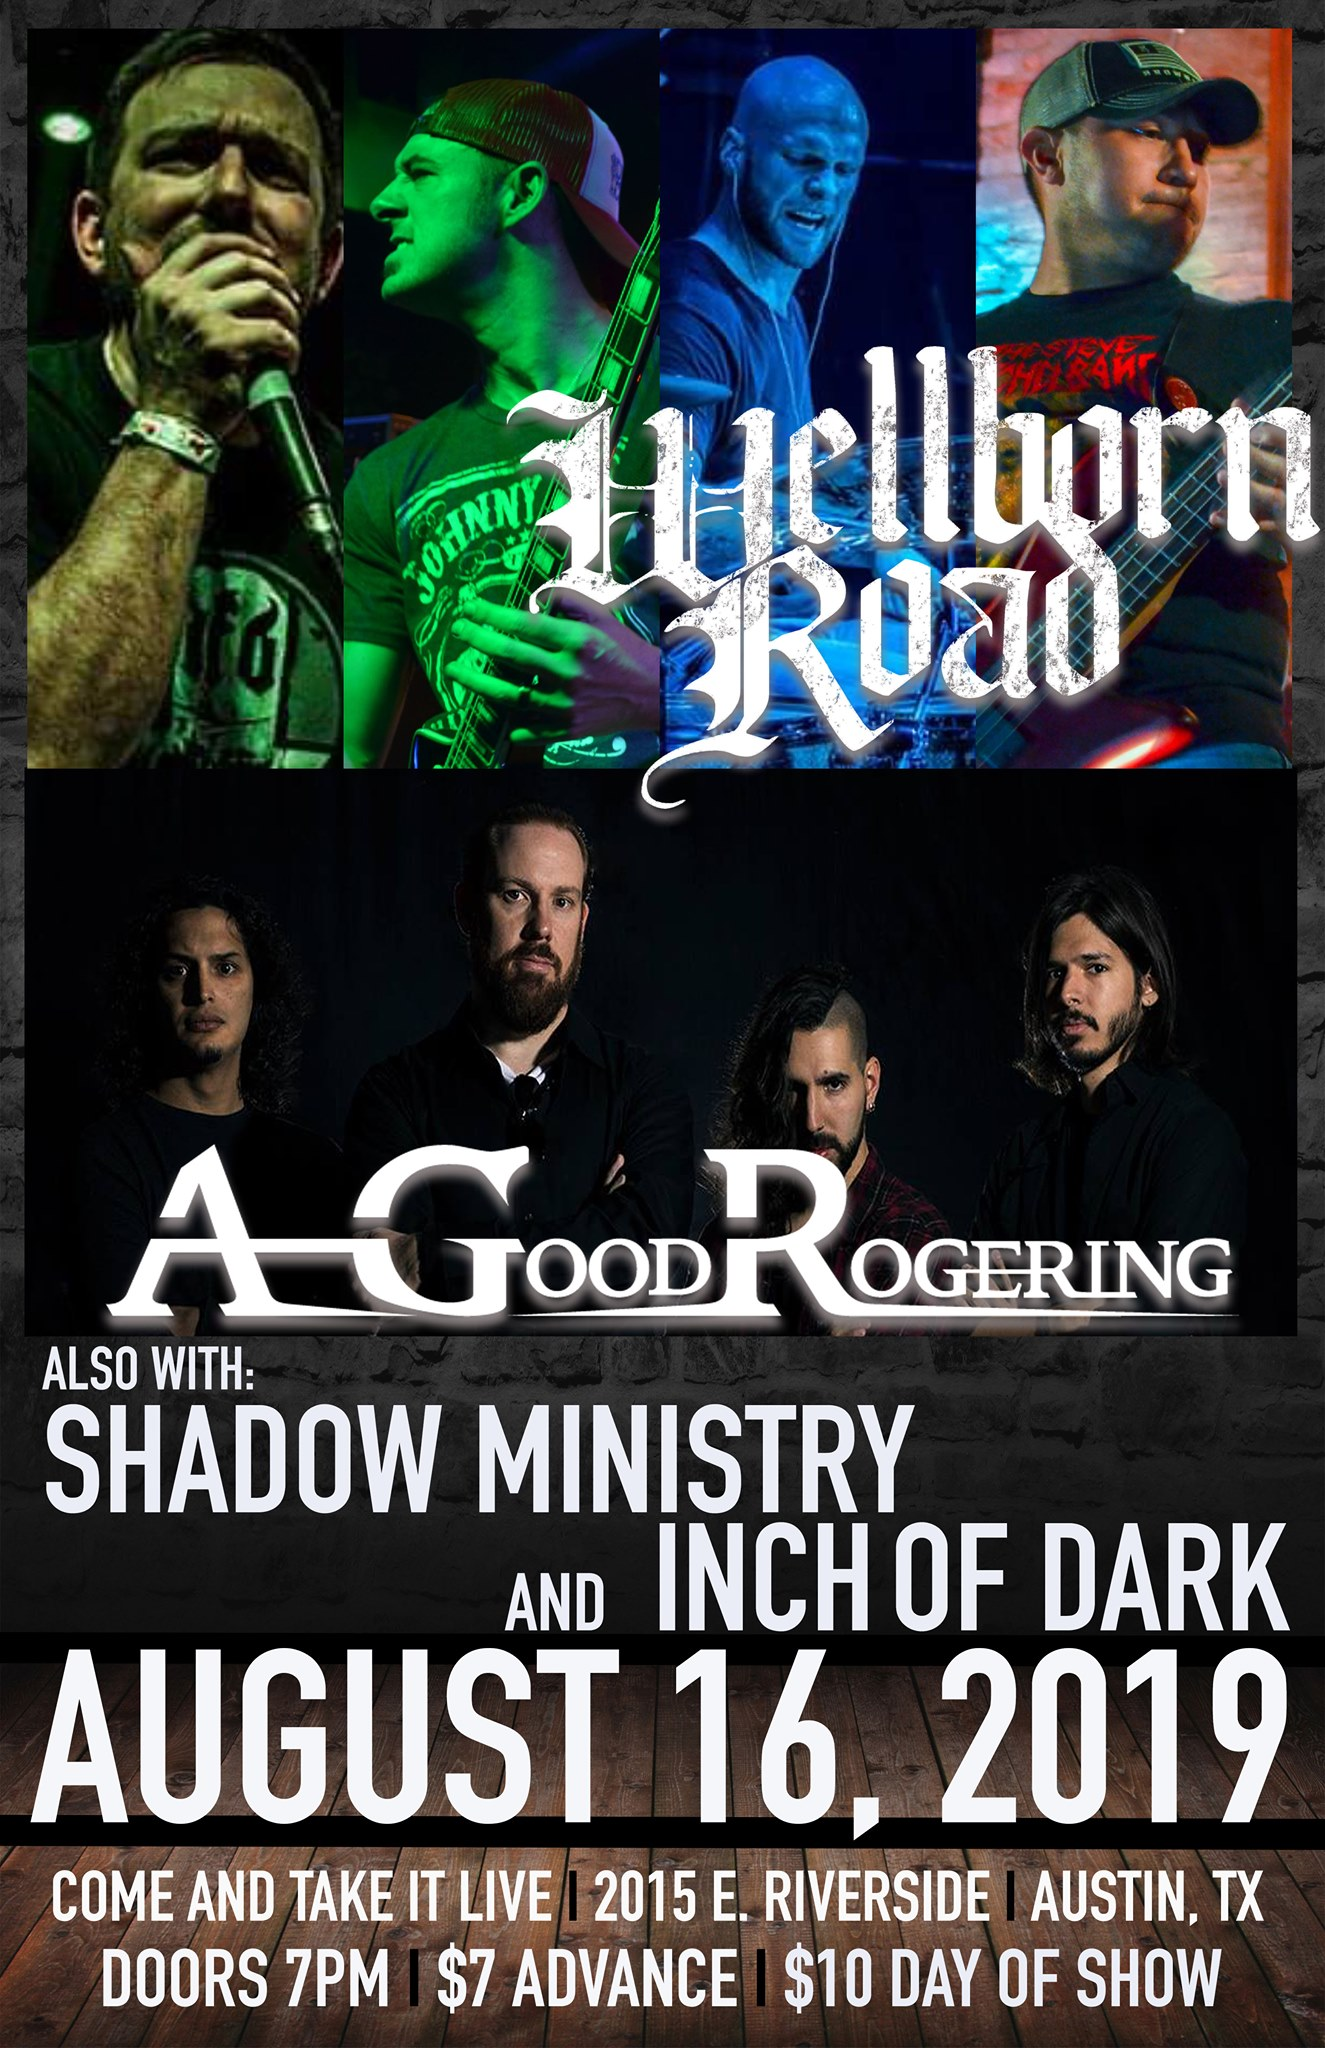 Image of Wellborn Road w/ A Good Rogering, Shadow Ministry & Inch of Dark